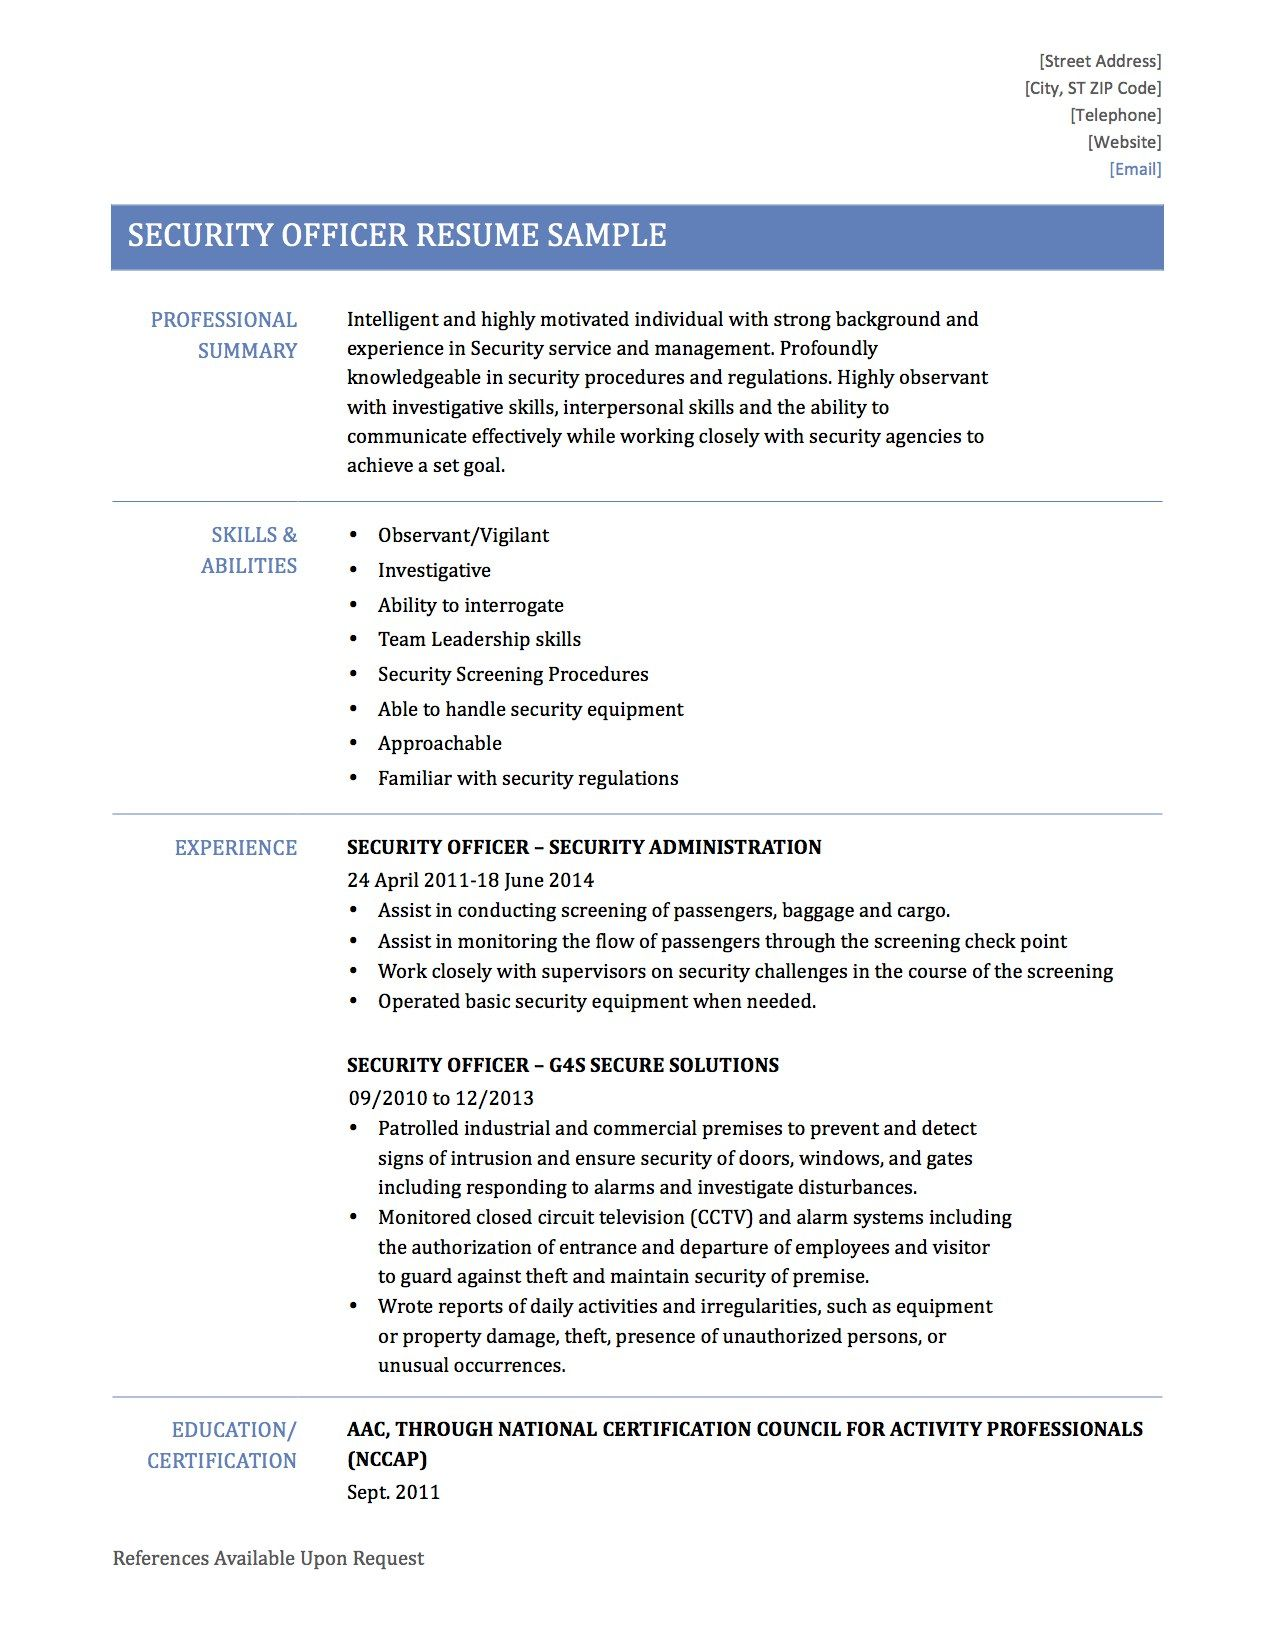 resume personal attributes examples